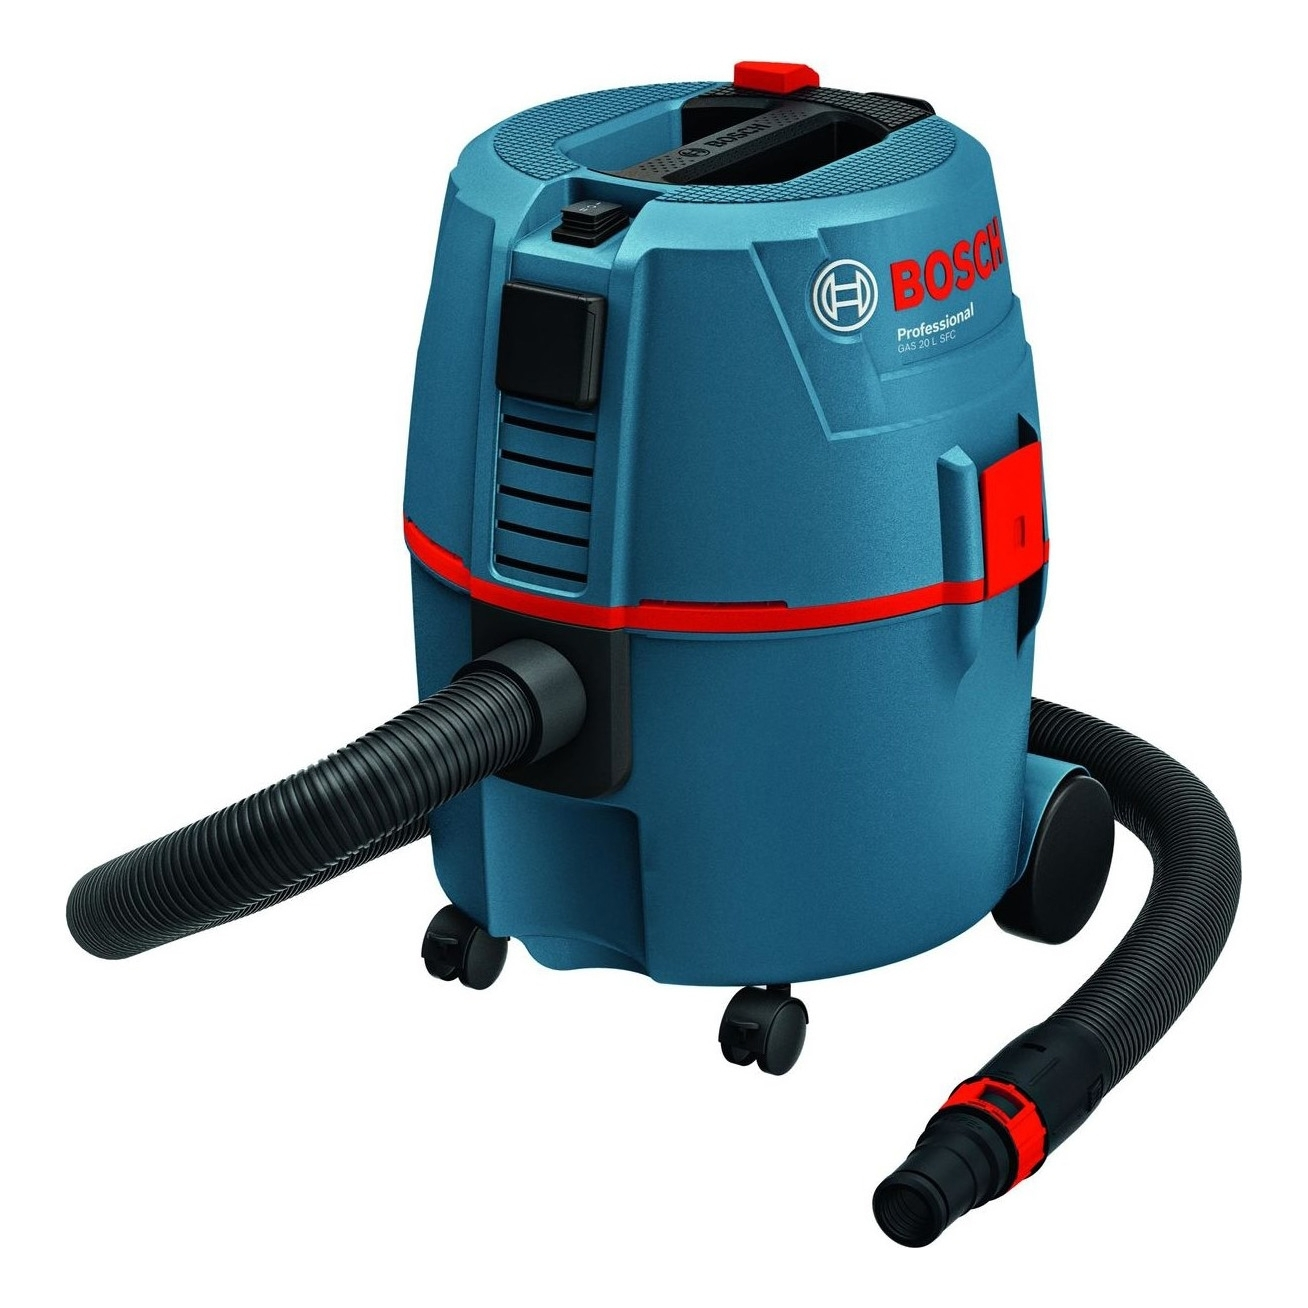 Vacuum cleaner wet and dry Bosch GAS 20 L SFC (Power 1200 W, 20 L, function blowing, socket tool, vacuum cleaner for dry and wet cleaning bosch gas 25